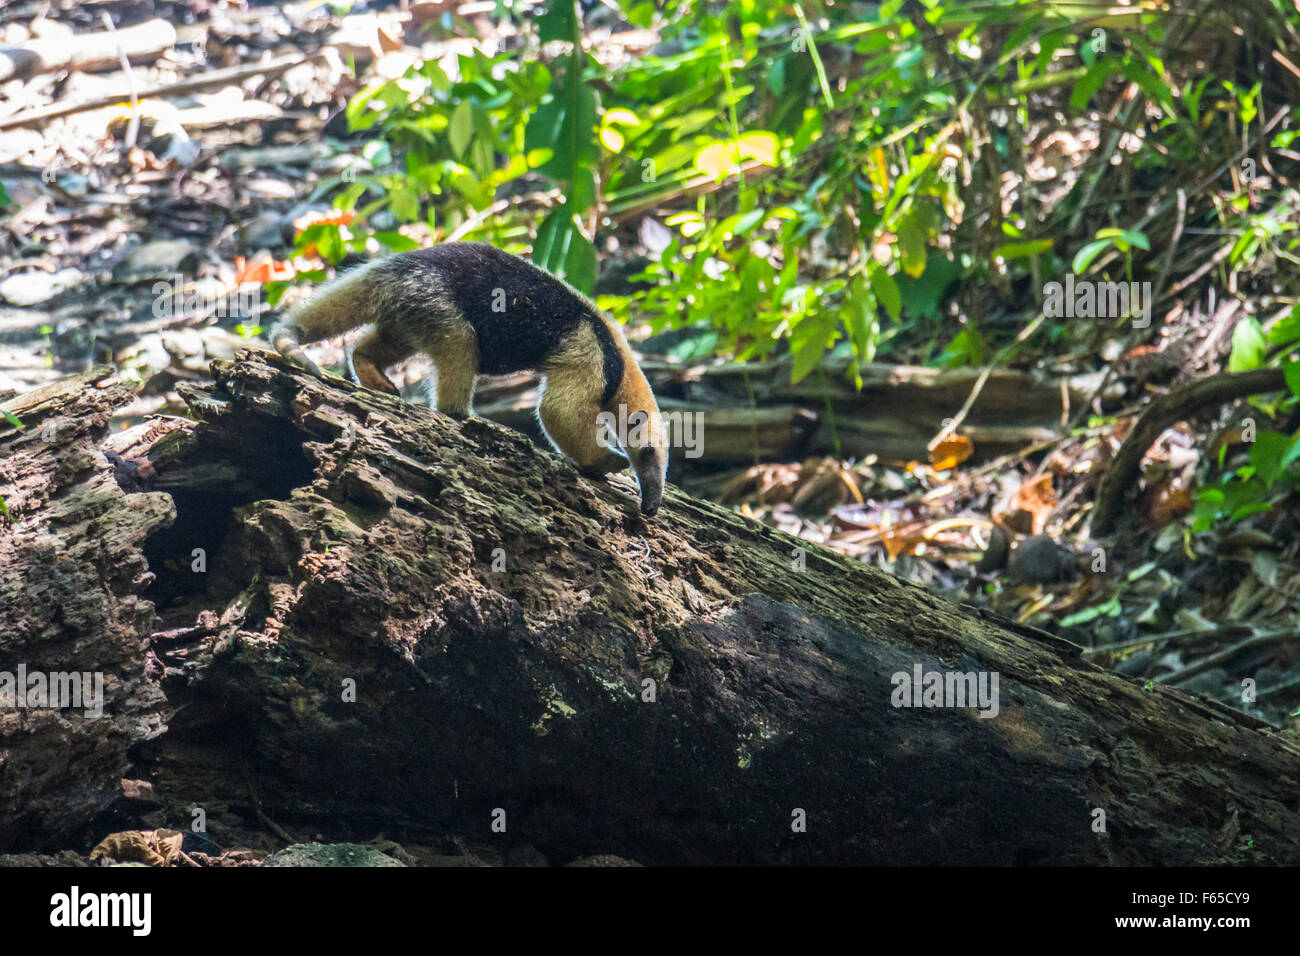 Ant-eater searching for food - Stock Image